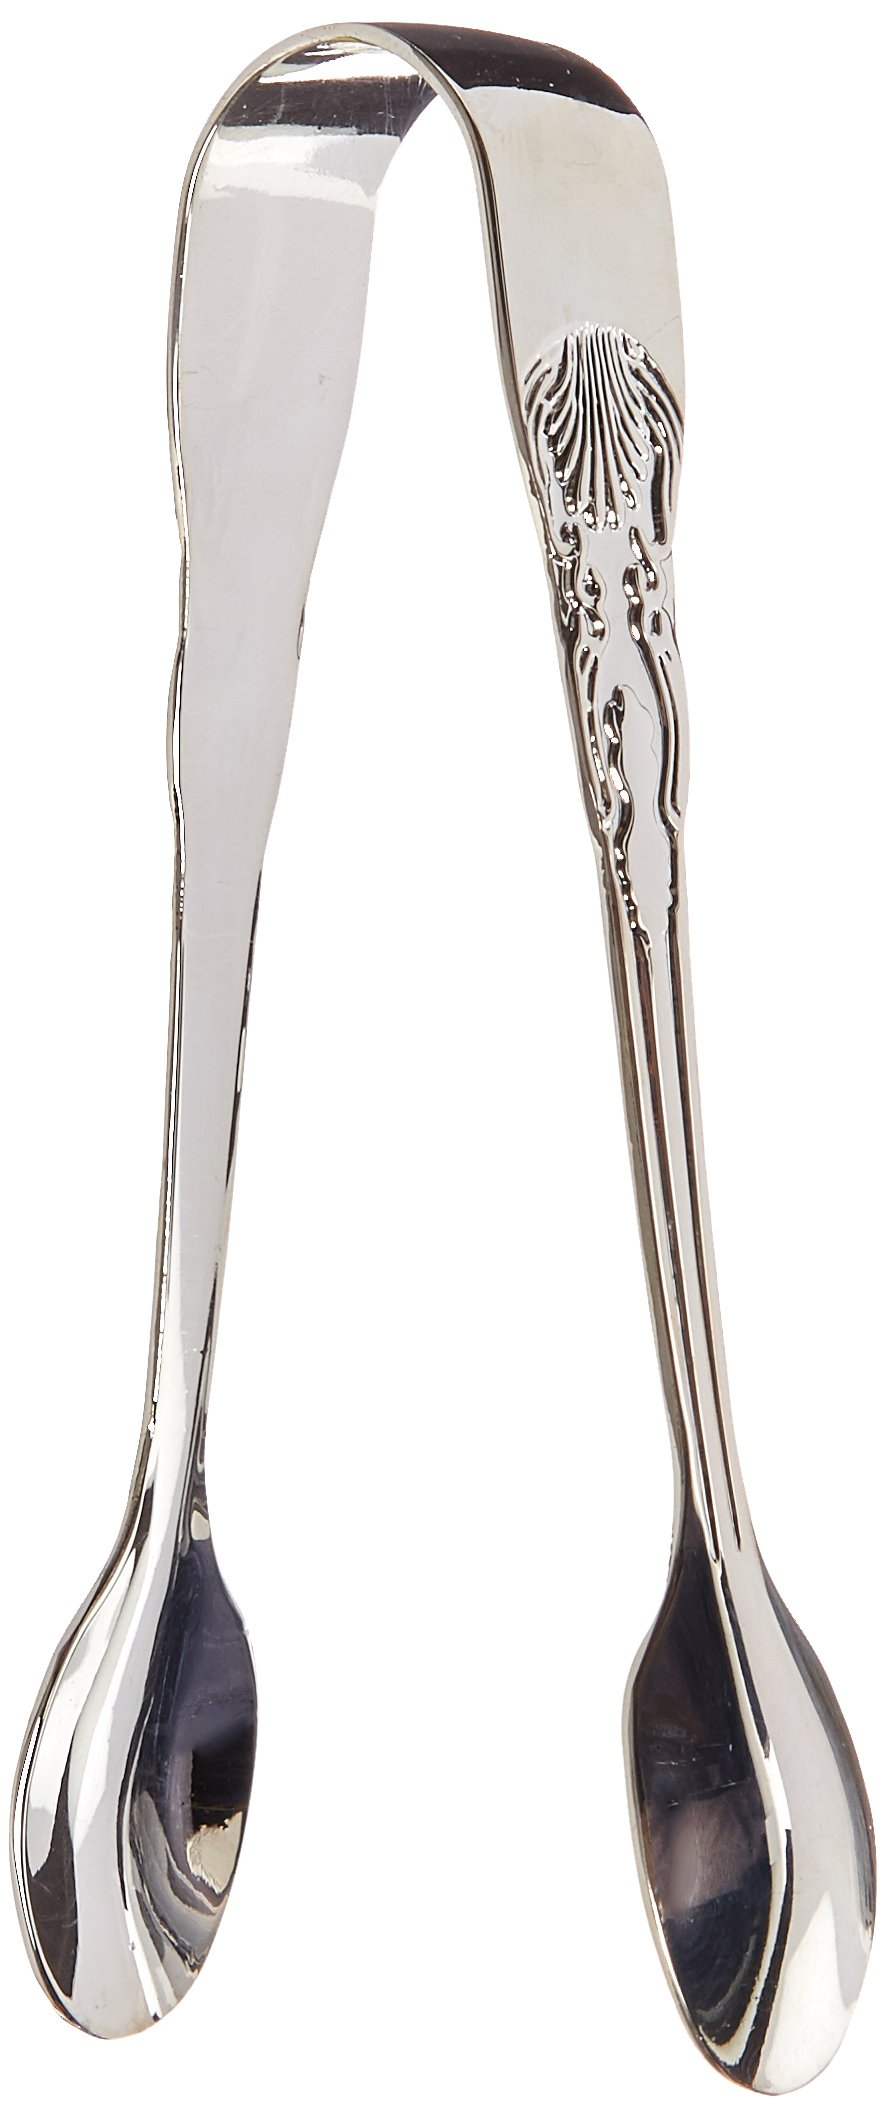 Elegance Silver 86241 Silver Plated Sugar Tongs, 4-1/2''